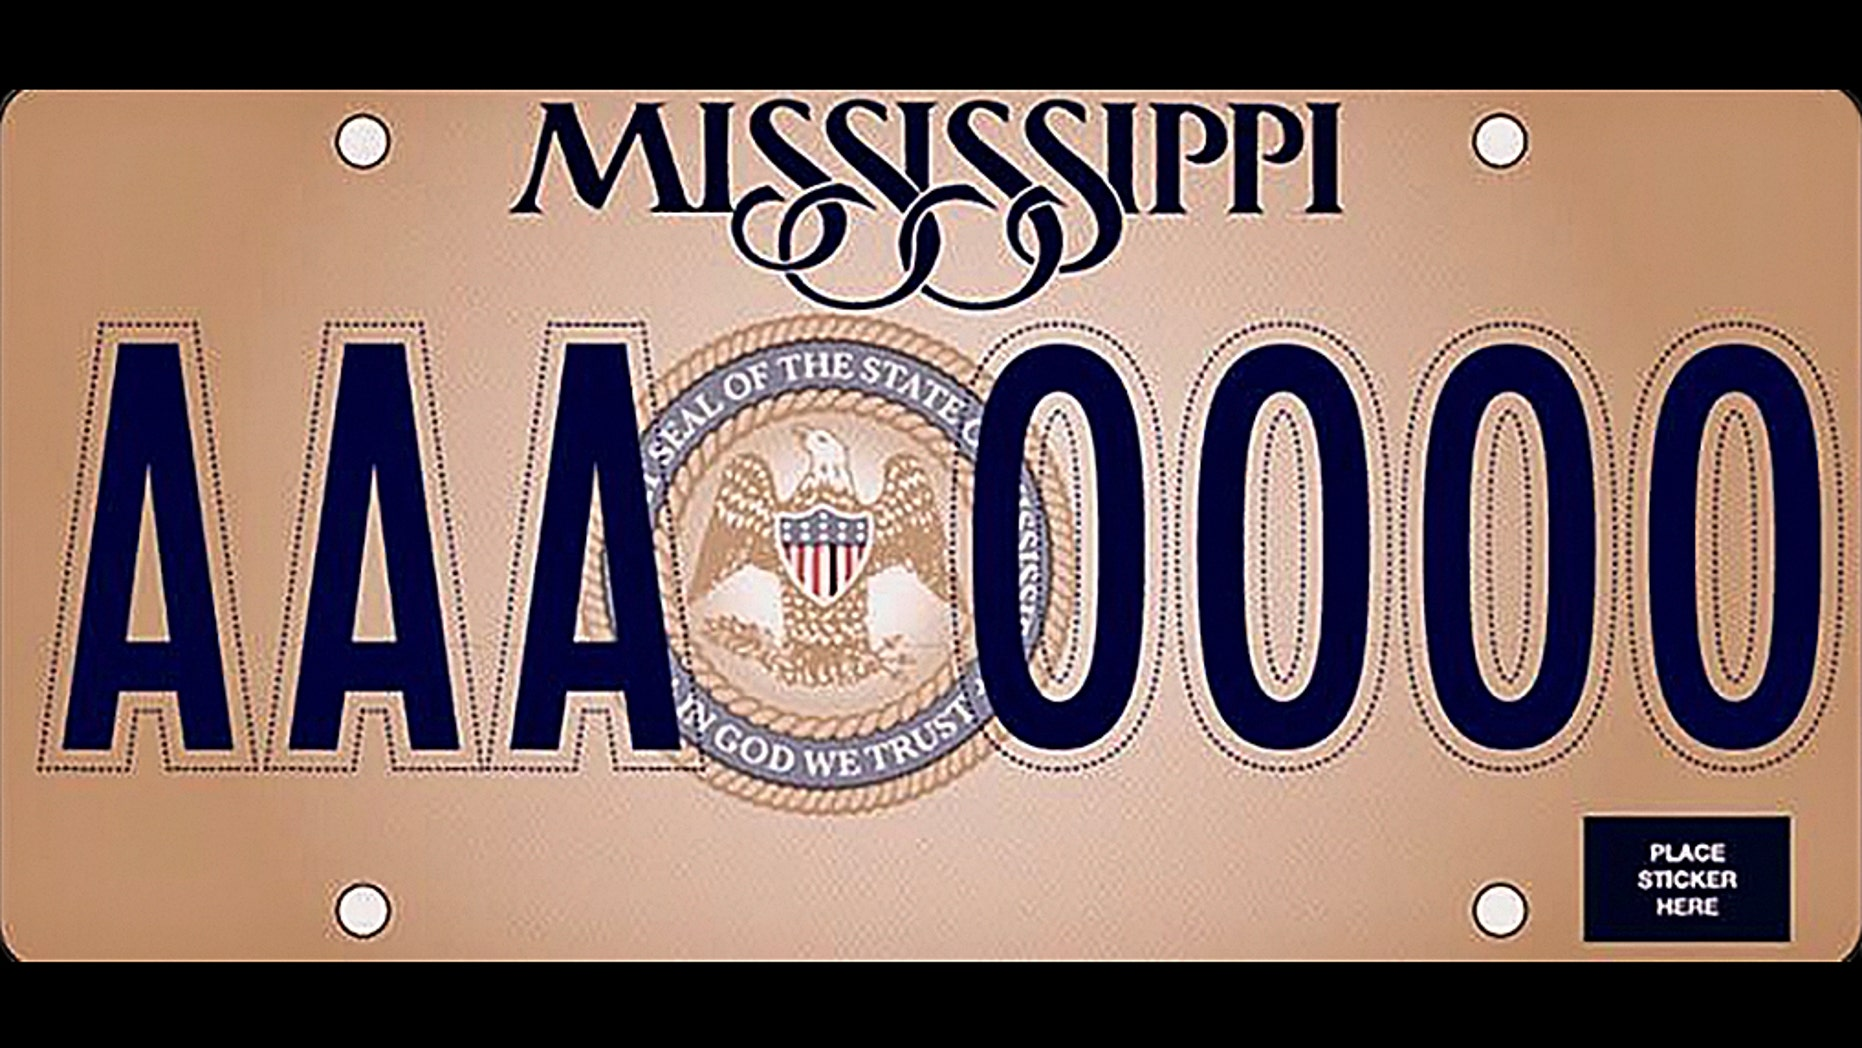 Mississippi unveils new state license plates with 'In God We